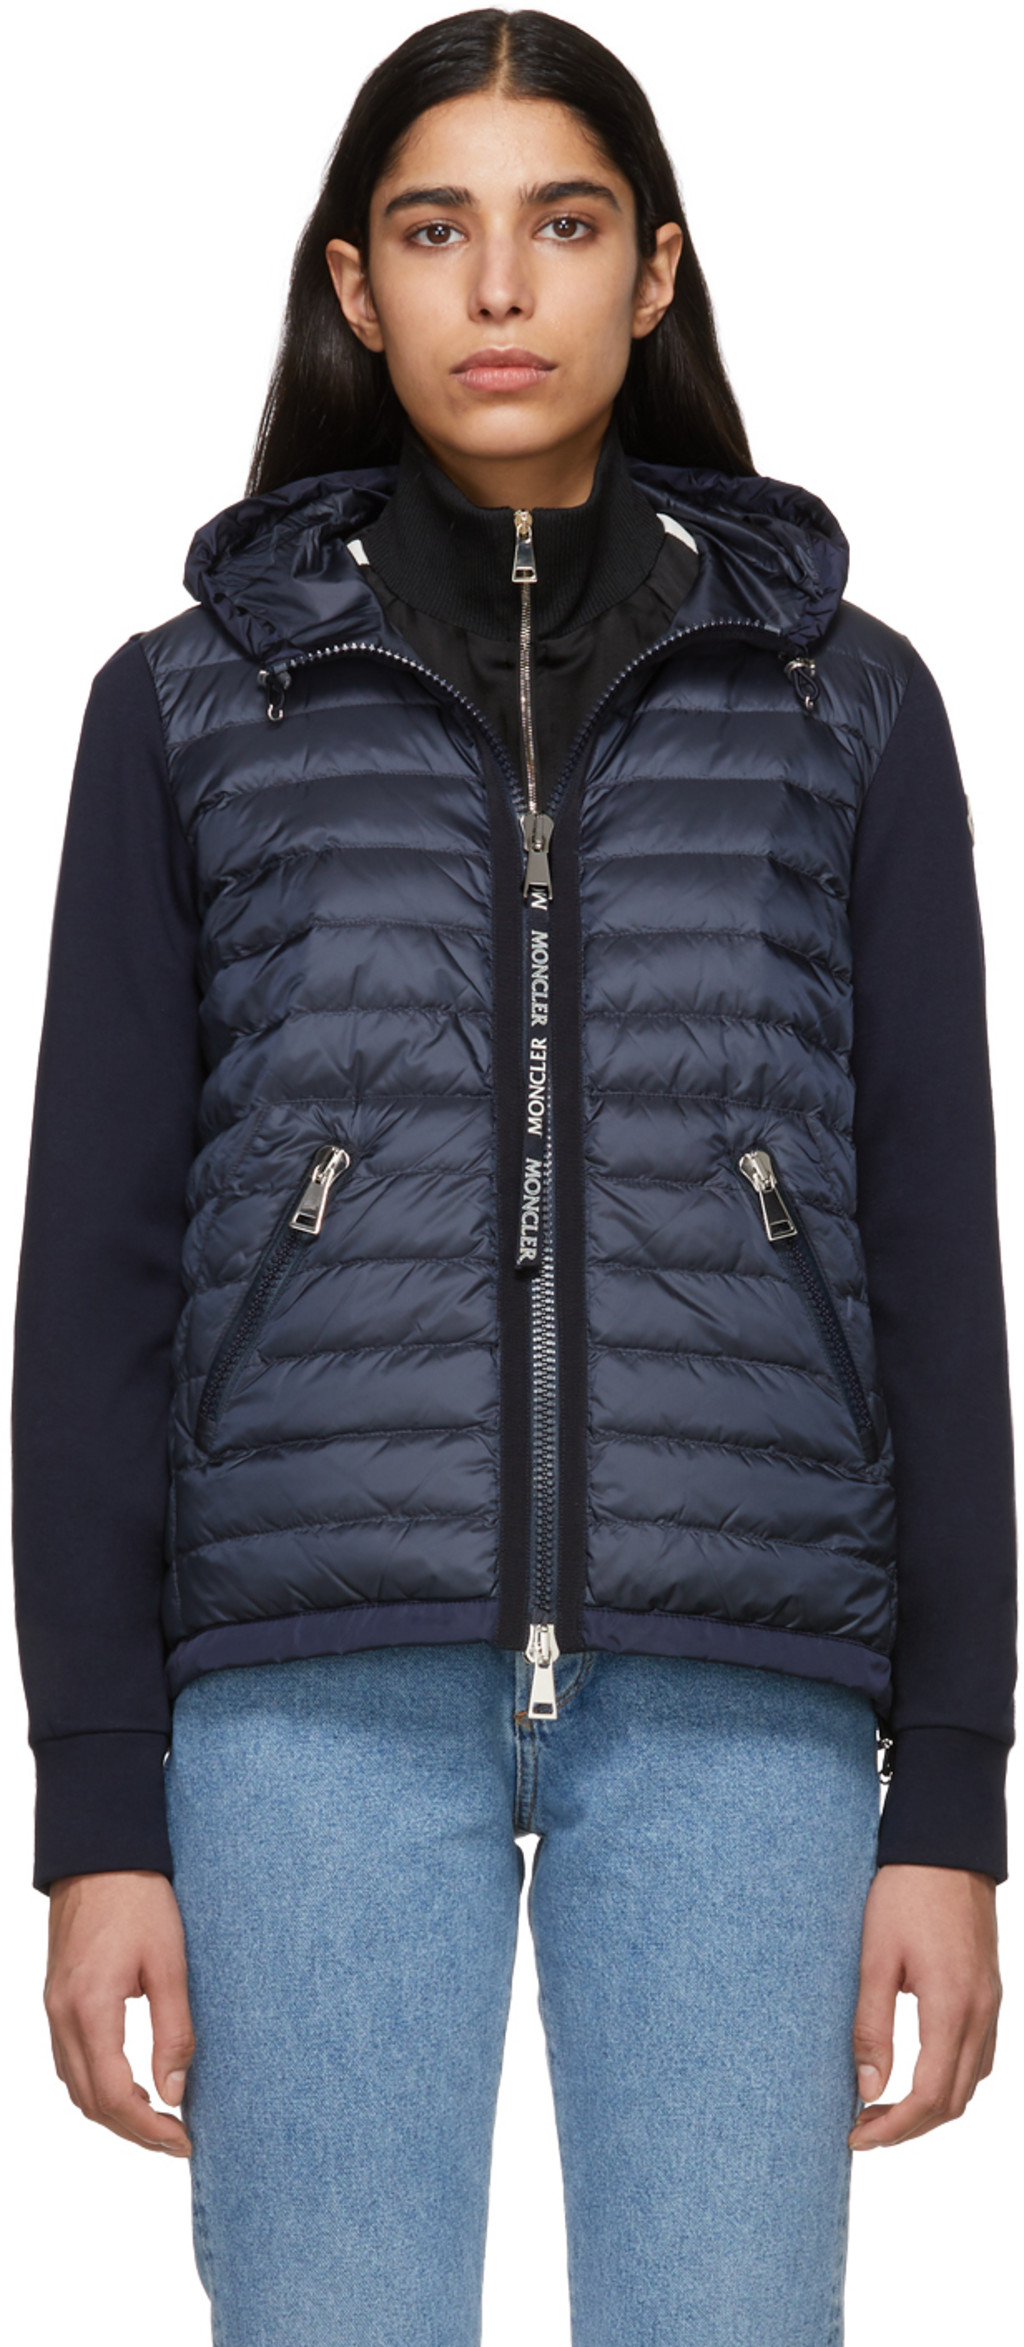 Moncler for Women SS19 Collection   SSENSE ed642501071